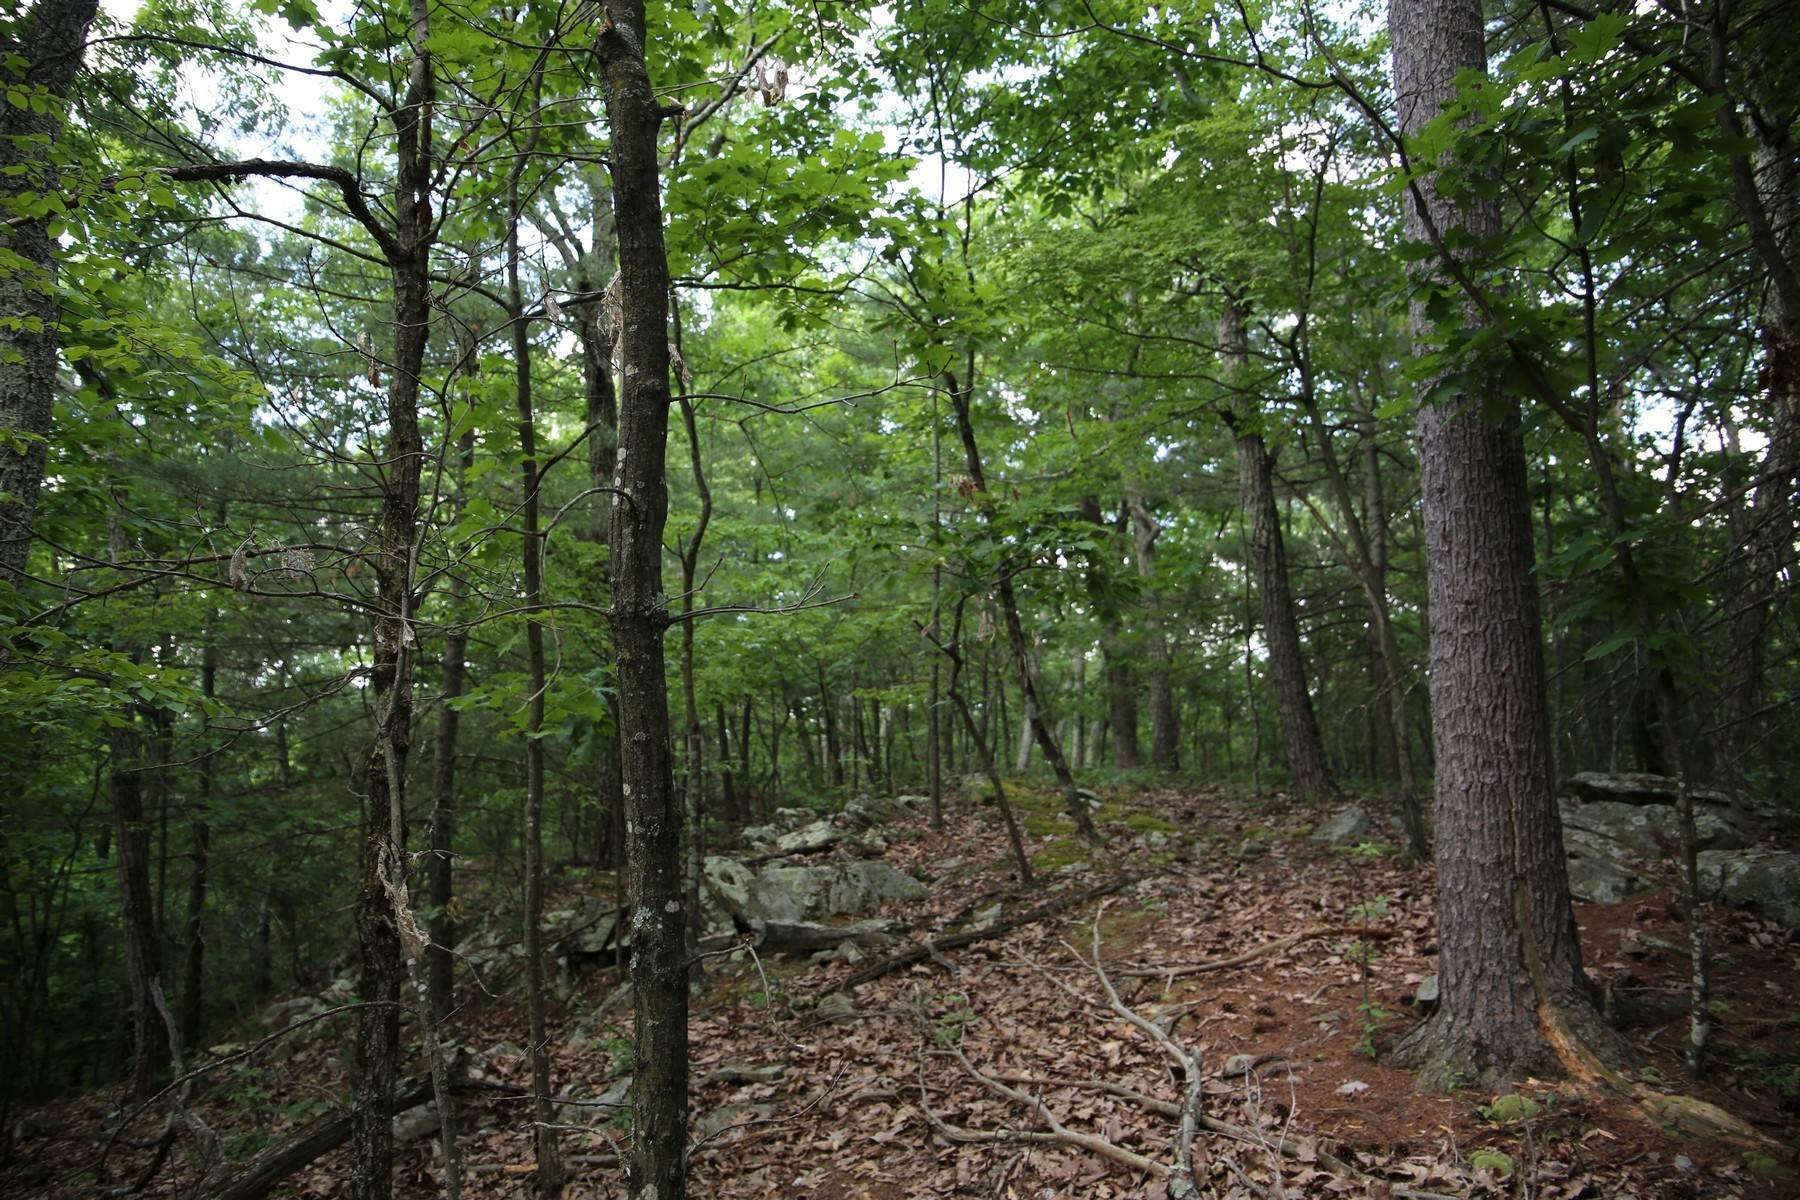 10. Land for Sale at Lily Lake Rd with access off Kisor Rd 70 Kisor (easement) Road, Lily Lake Rd Highland, New York 12528 United States